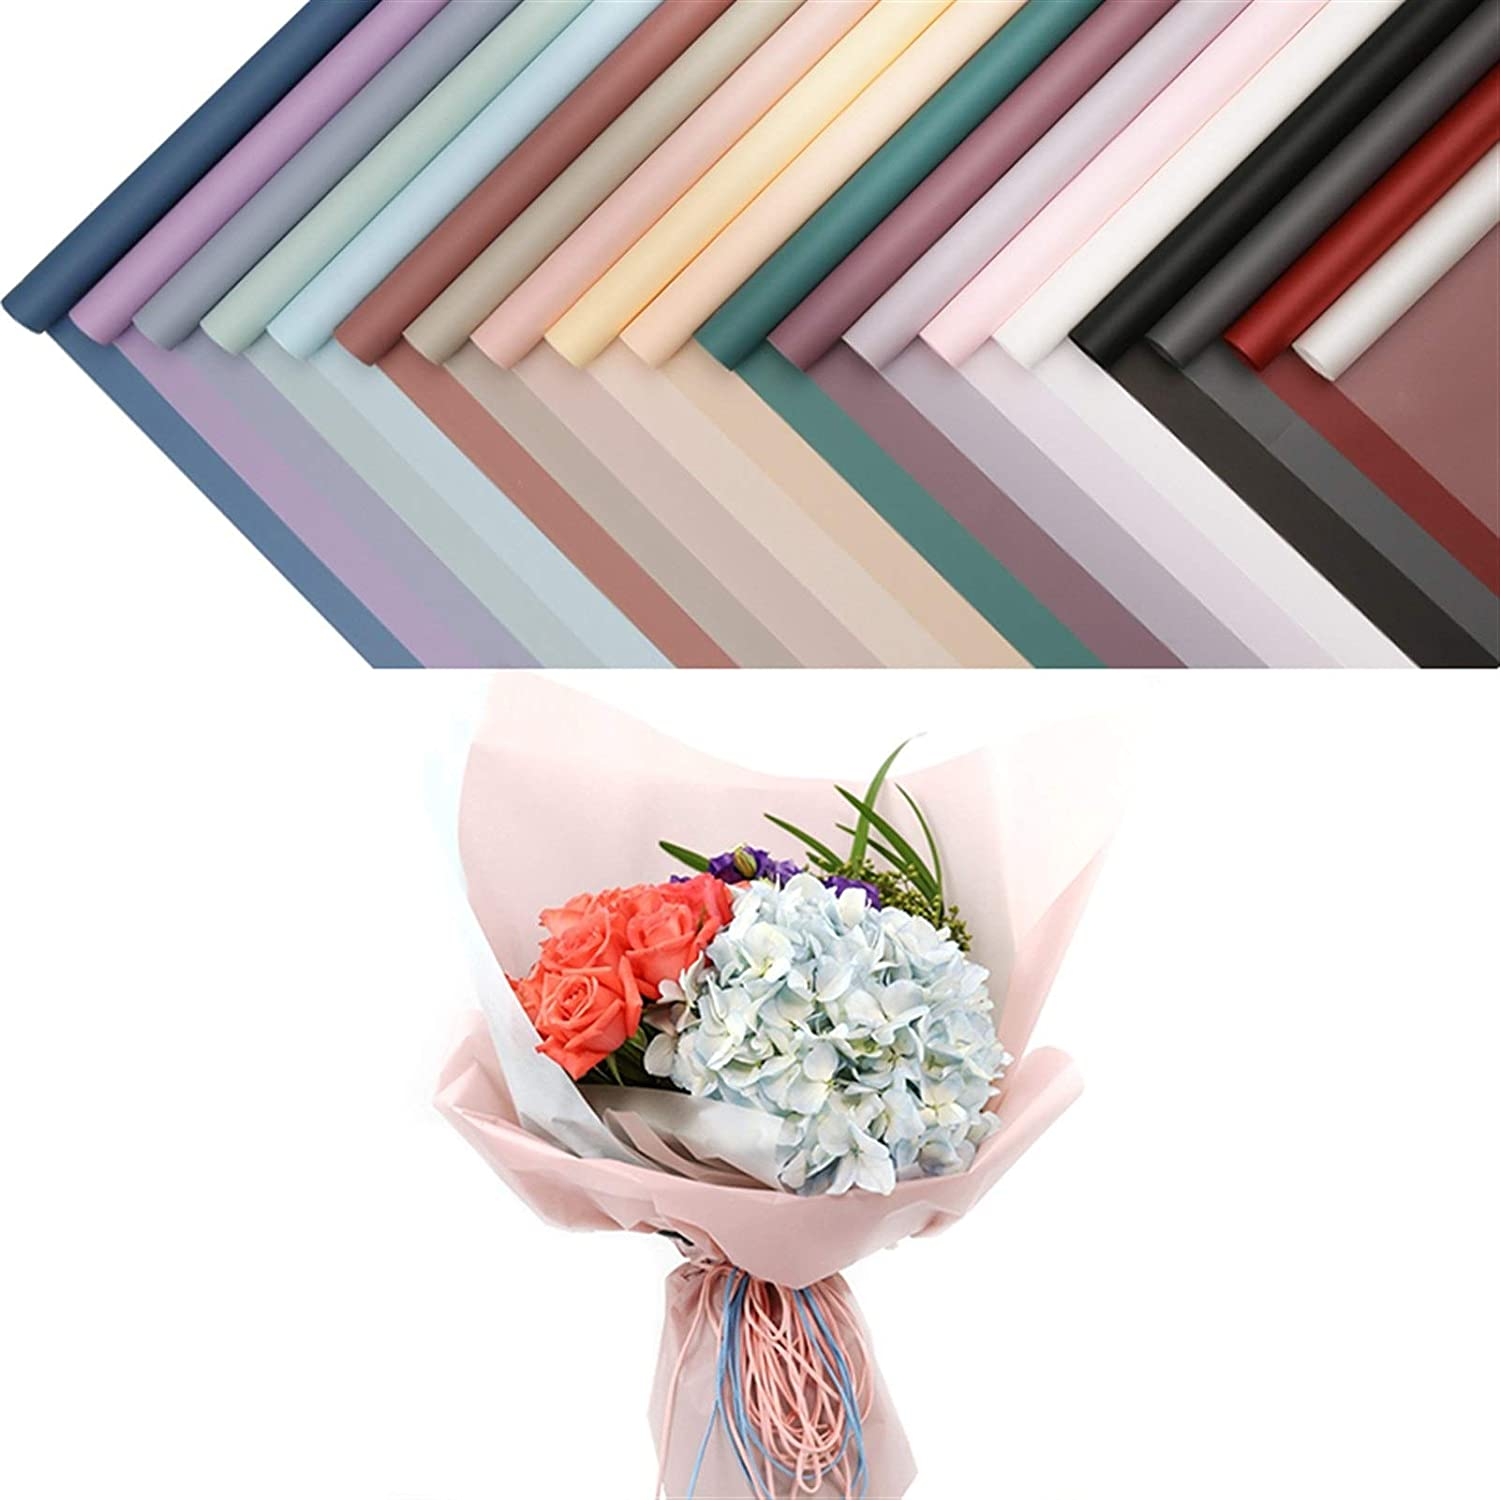 20pcs Korean Waterproof Wrapping Packaging Paper Gift Max 63% OFF Las Vegas Mall S